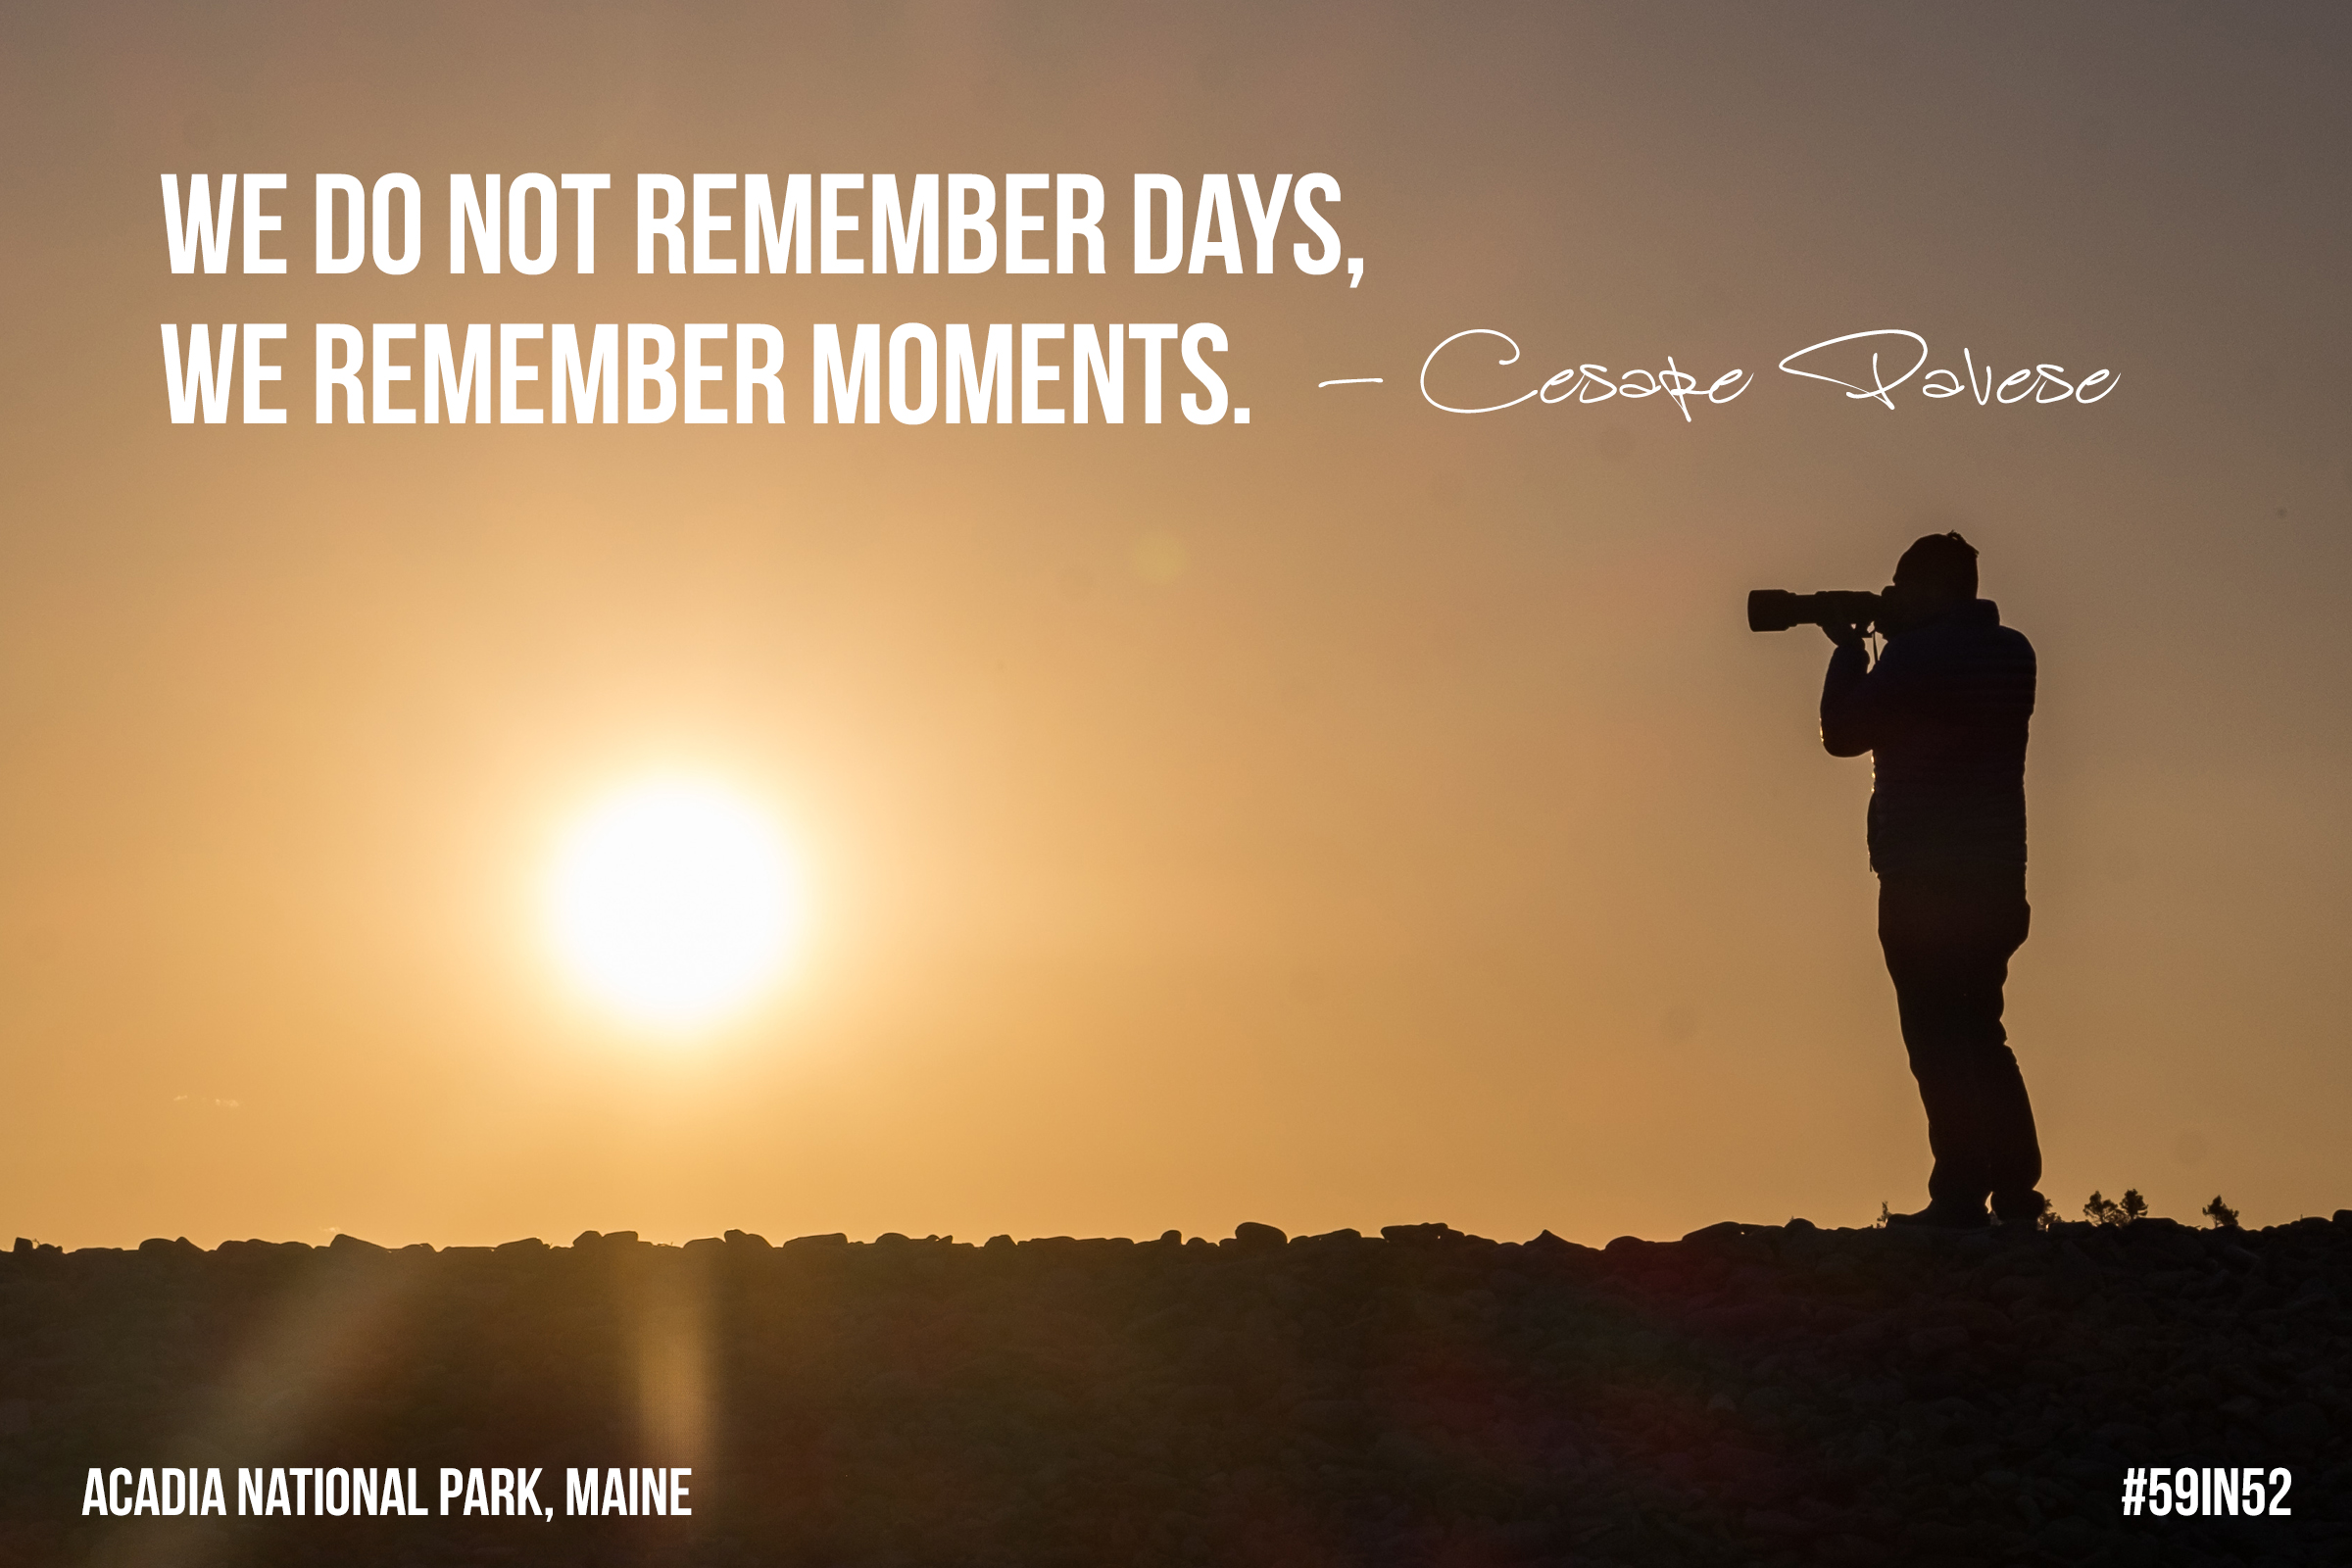 'We do not remember days, we remember moments.' - Cesare Pavese